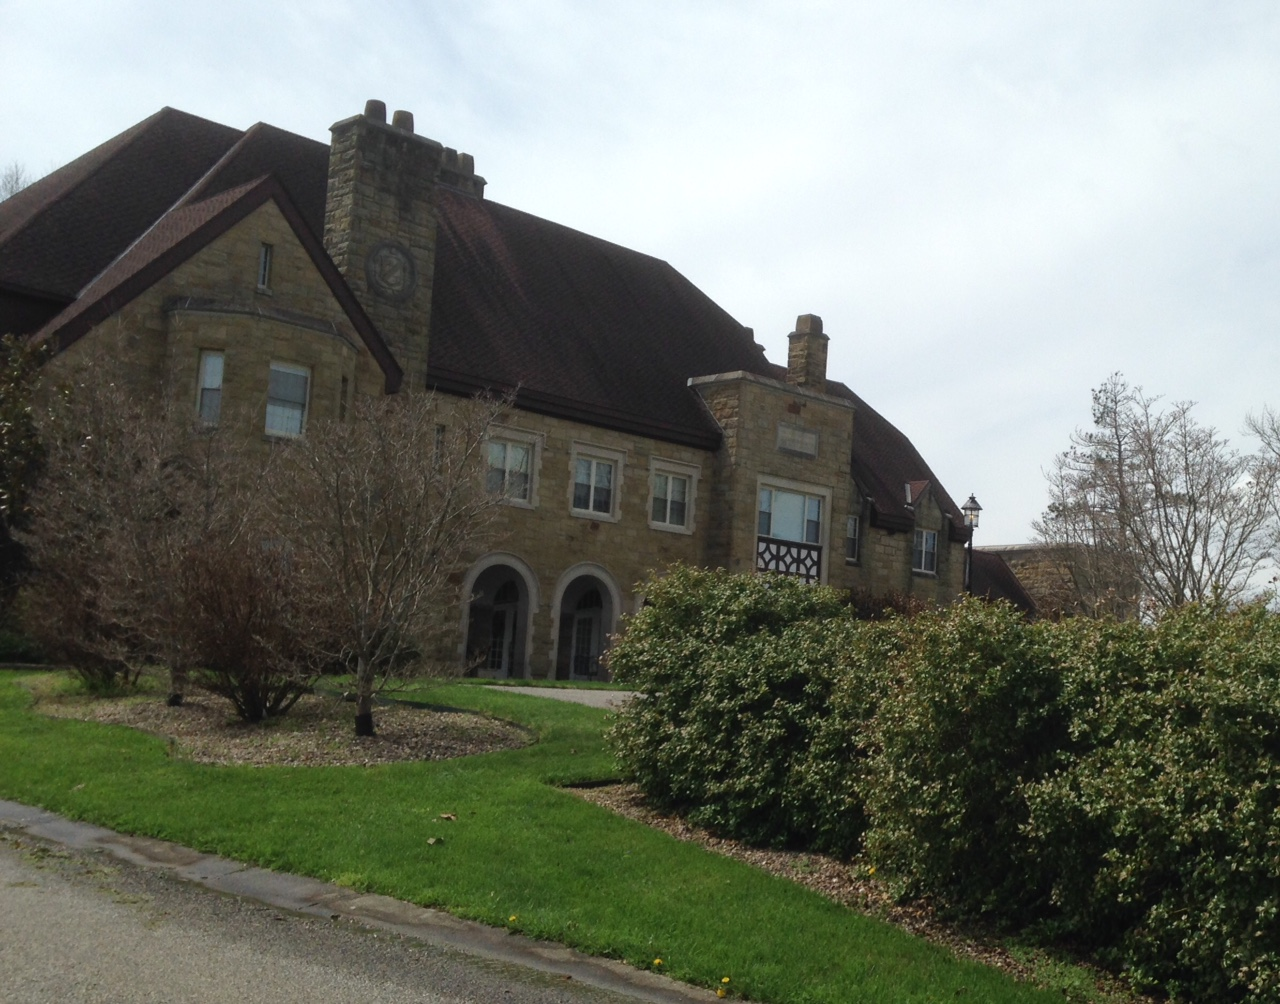 The school is located about three miles north of Ona.